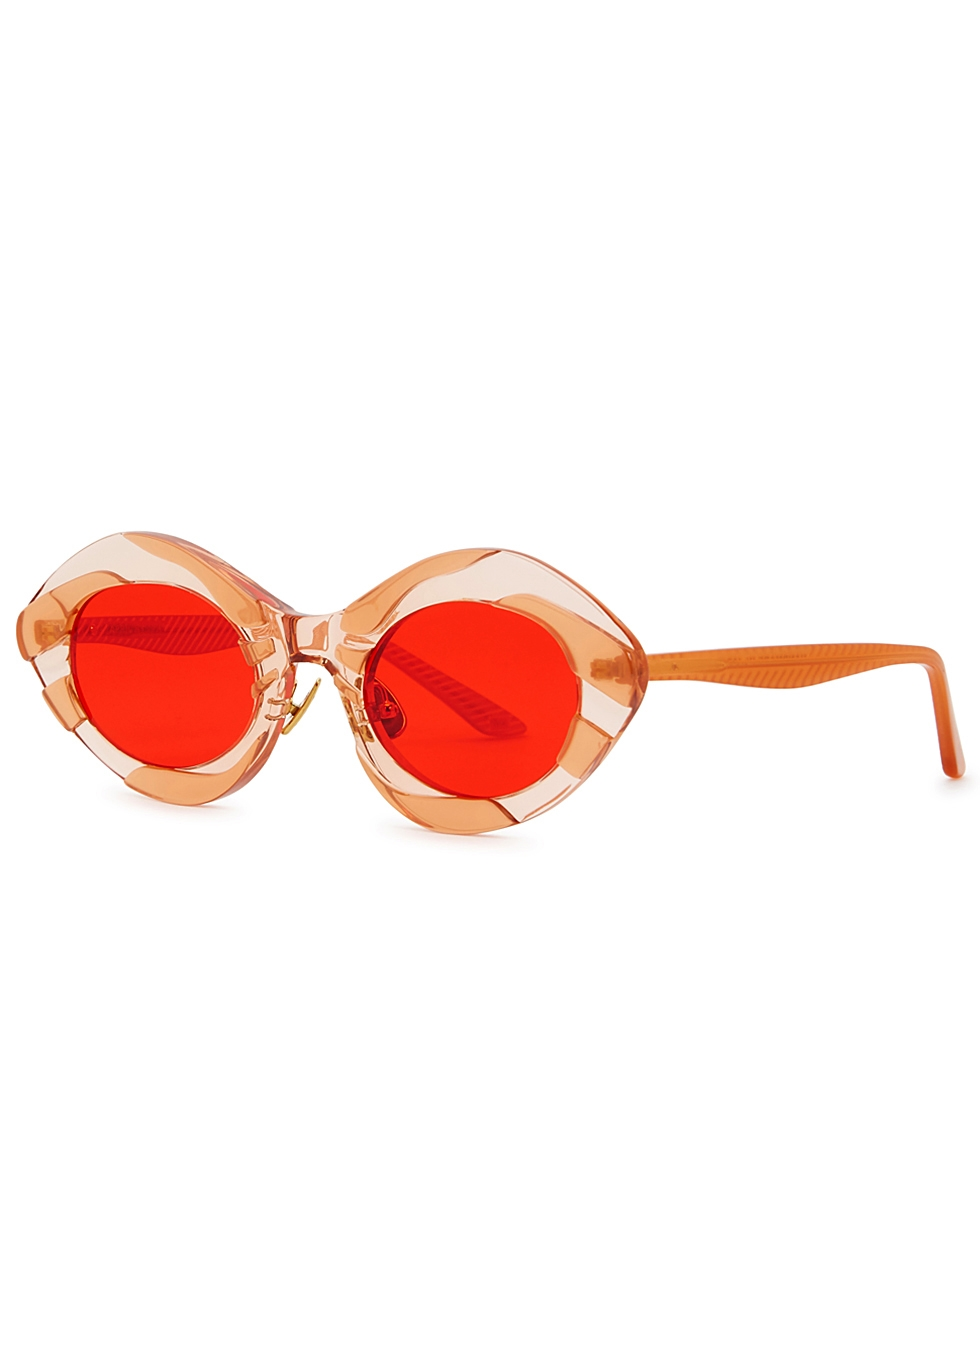 MOY ATELIER April Nymph Oval-Frame Sunglasses in Red